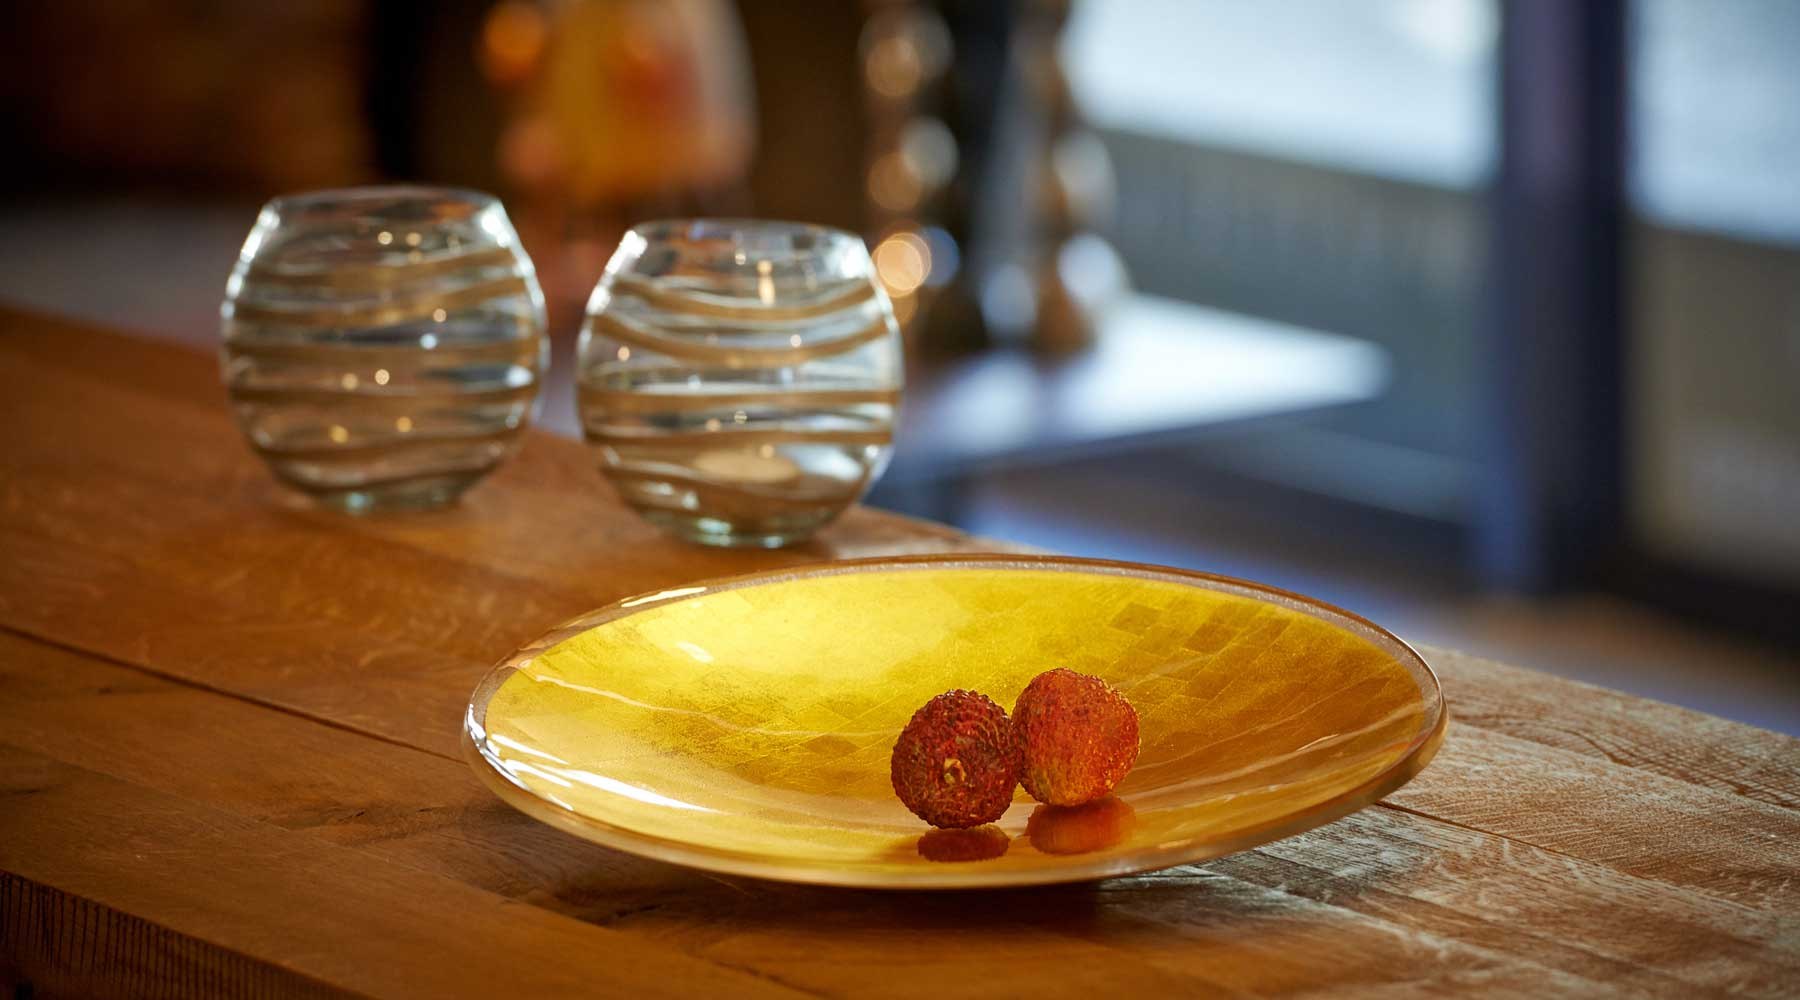 Gold in Glass round-plate